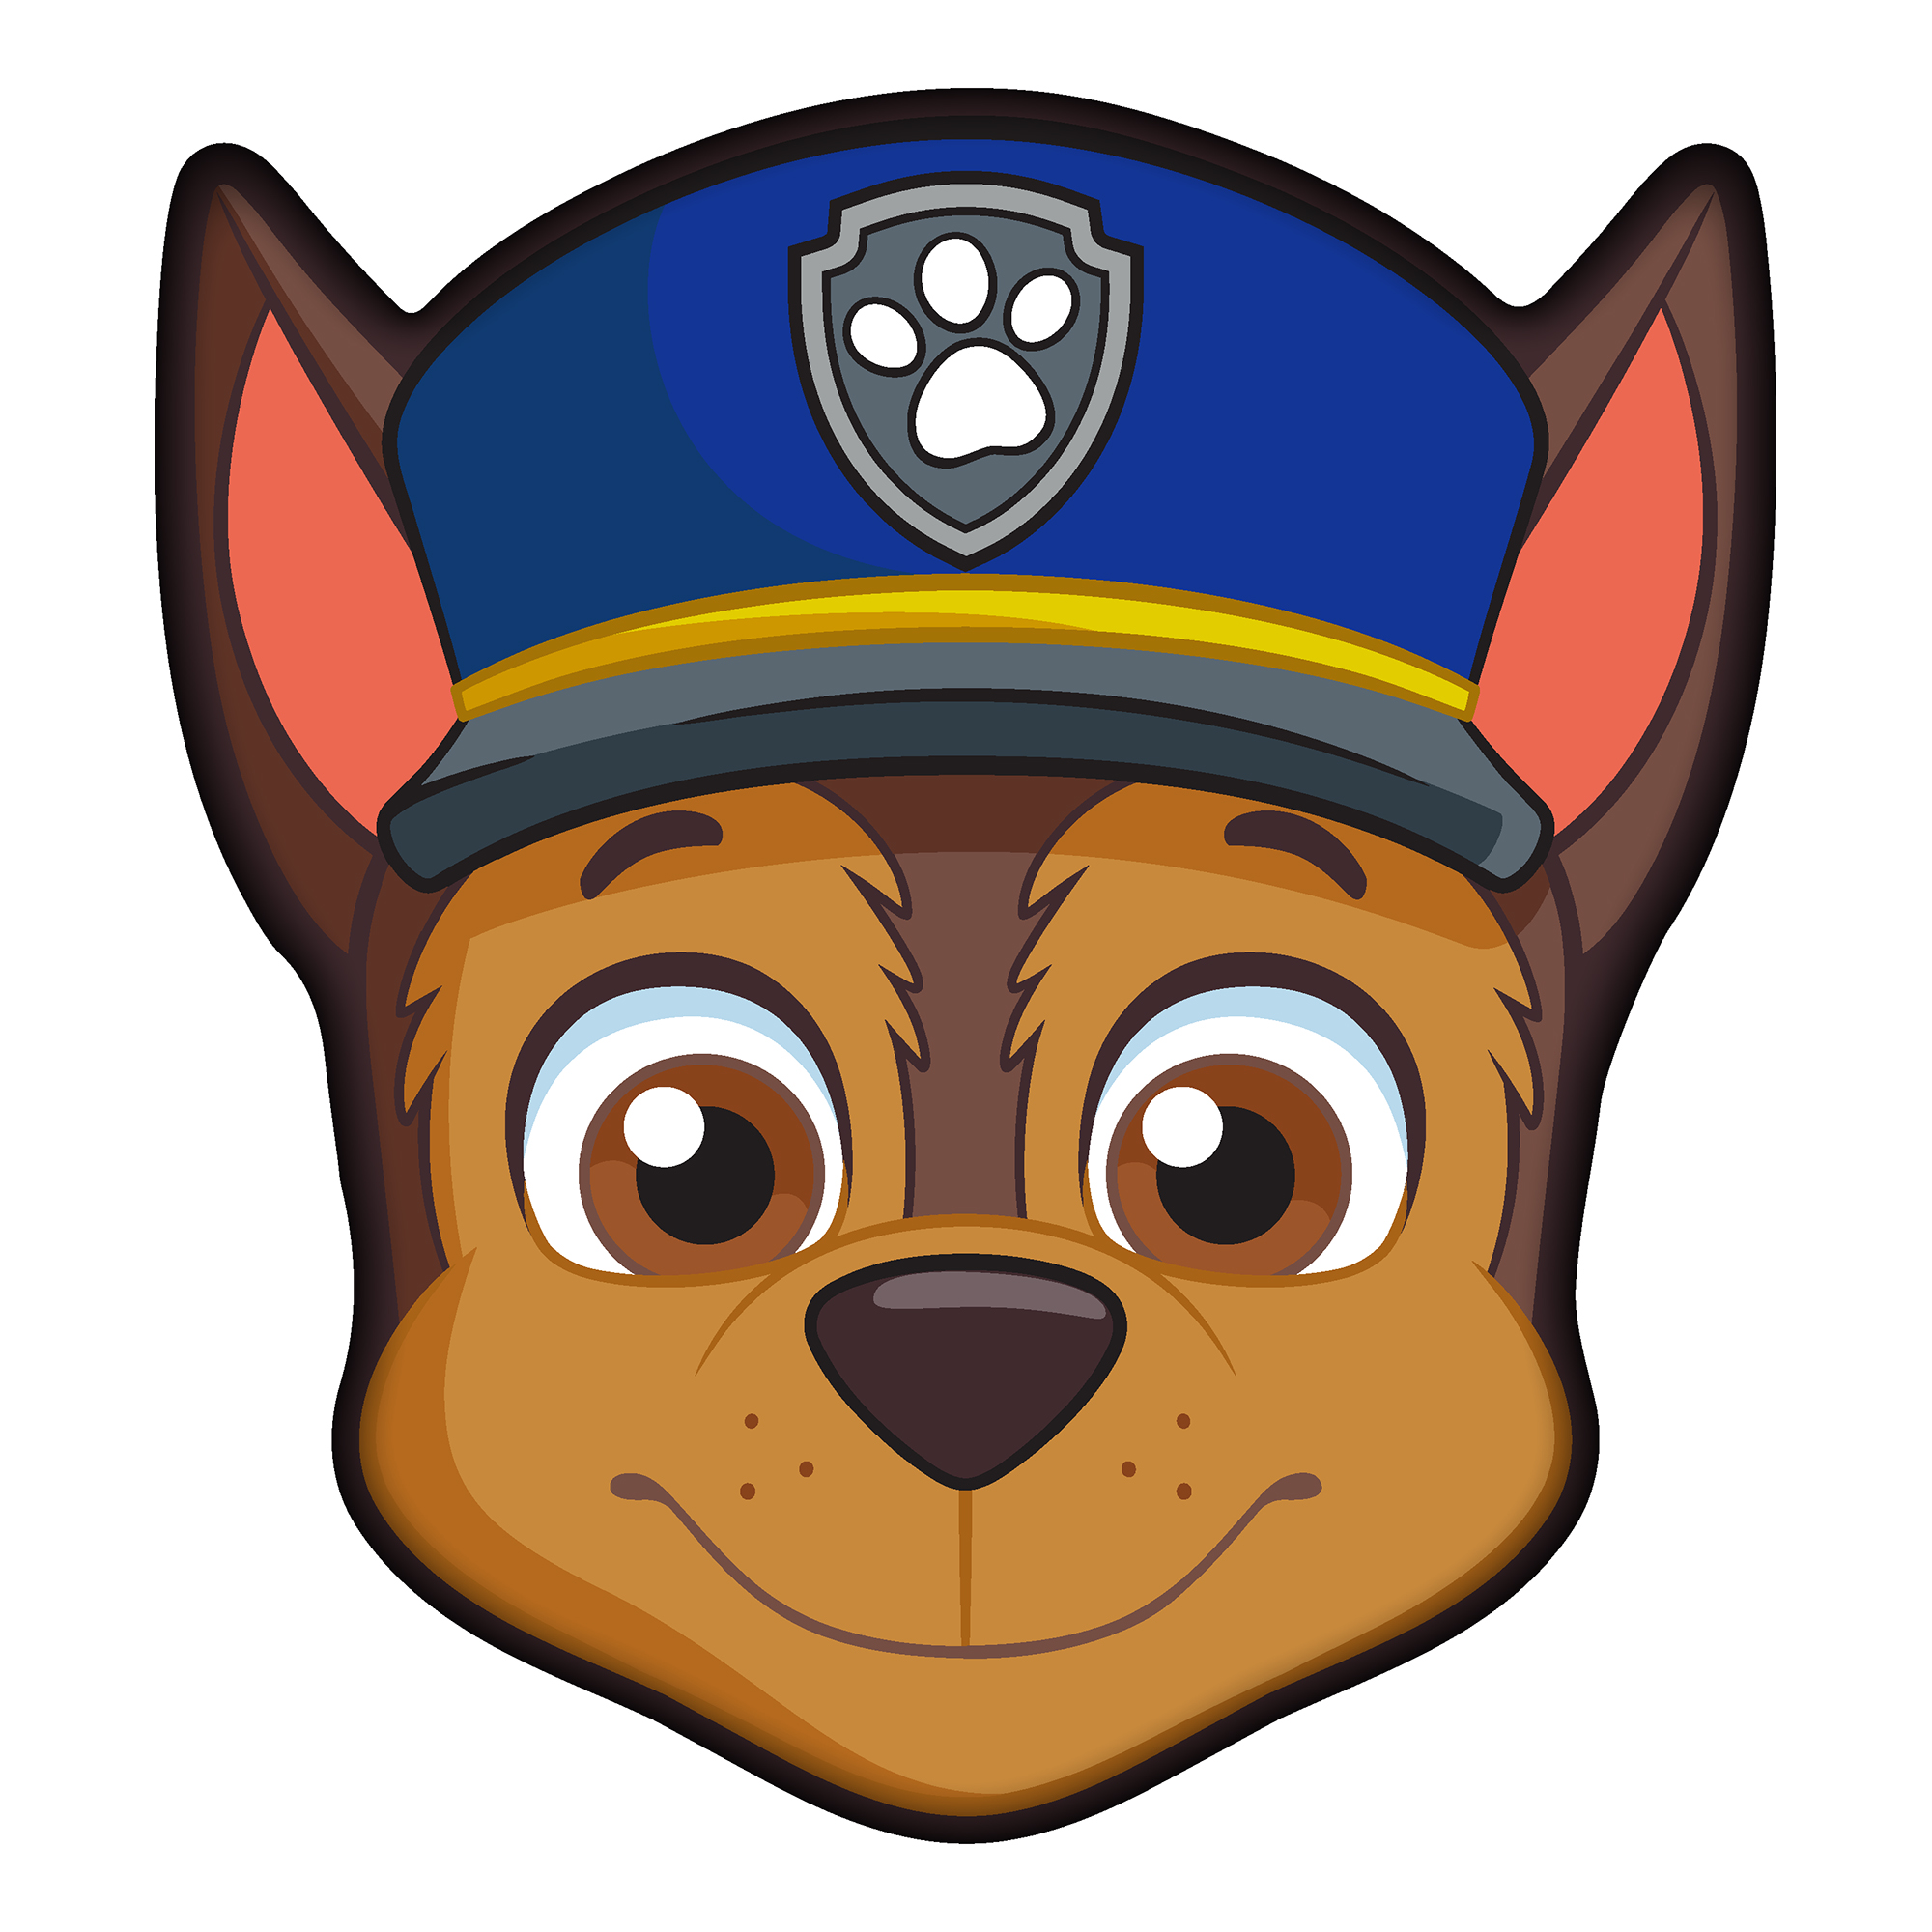 Paw patrol clipart images in collection page 3 jpg